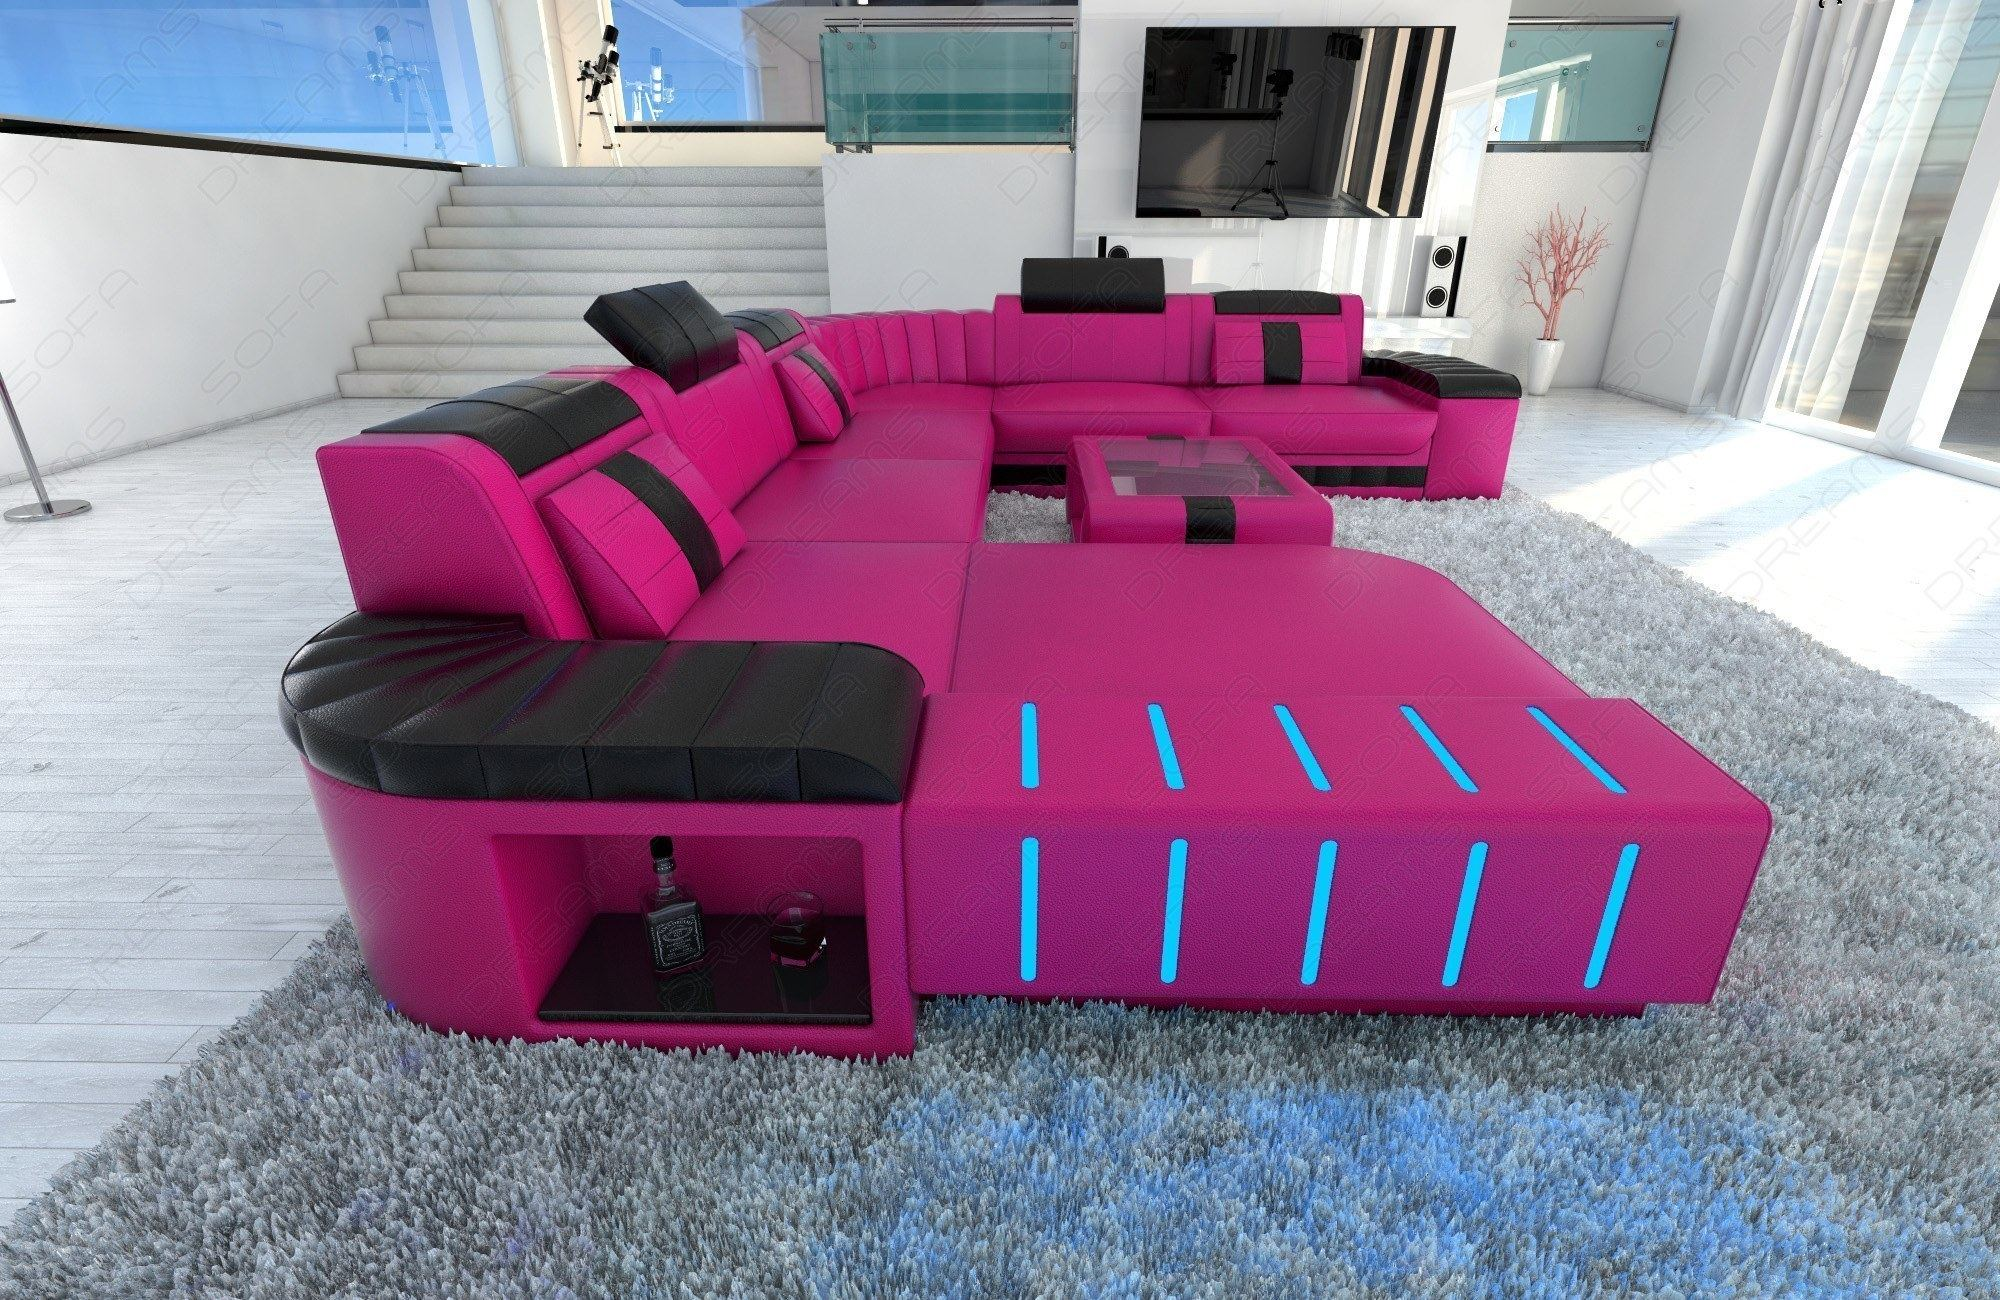 pink leather sofas how to fix sagging down sofa cushions xxl sectional bellagio led u shaped black ebay